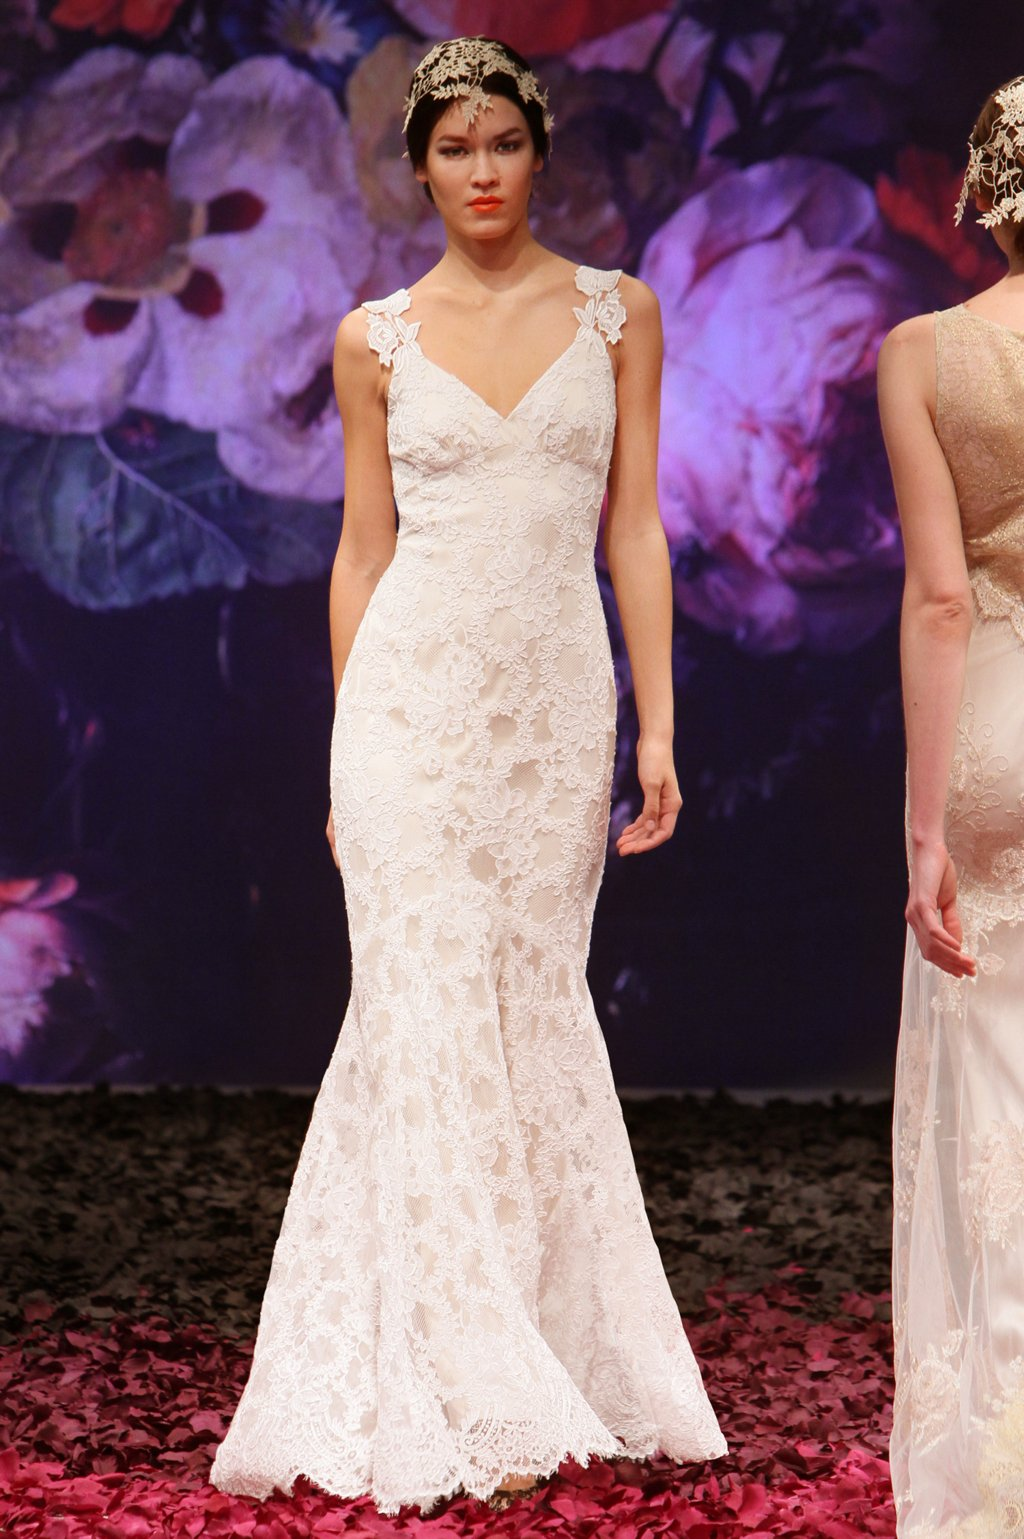 Belladonna-wedding-dress-by-claire-pettibone-2014-still-life-bridal-collection.full